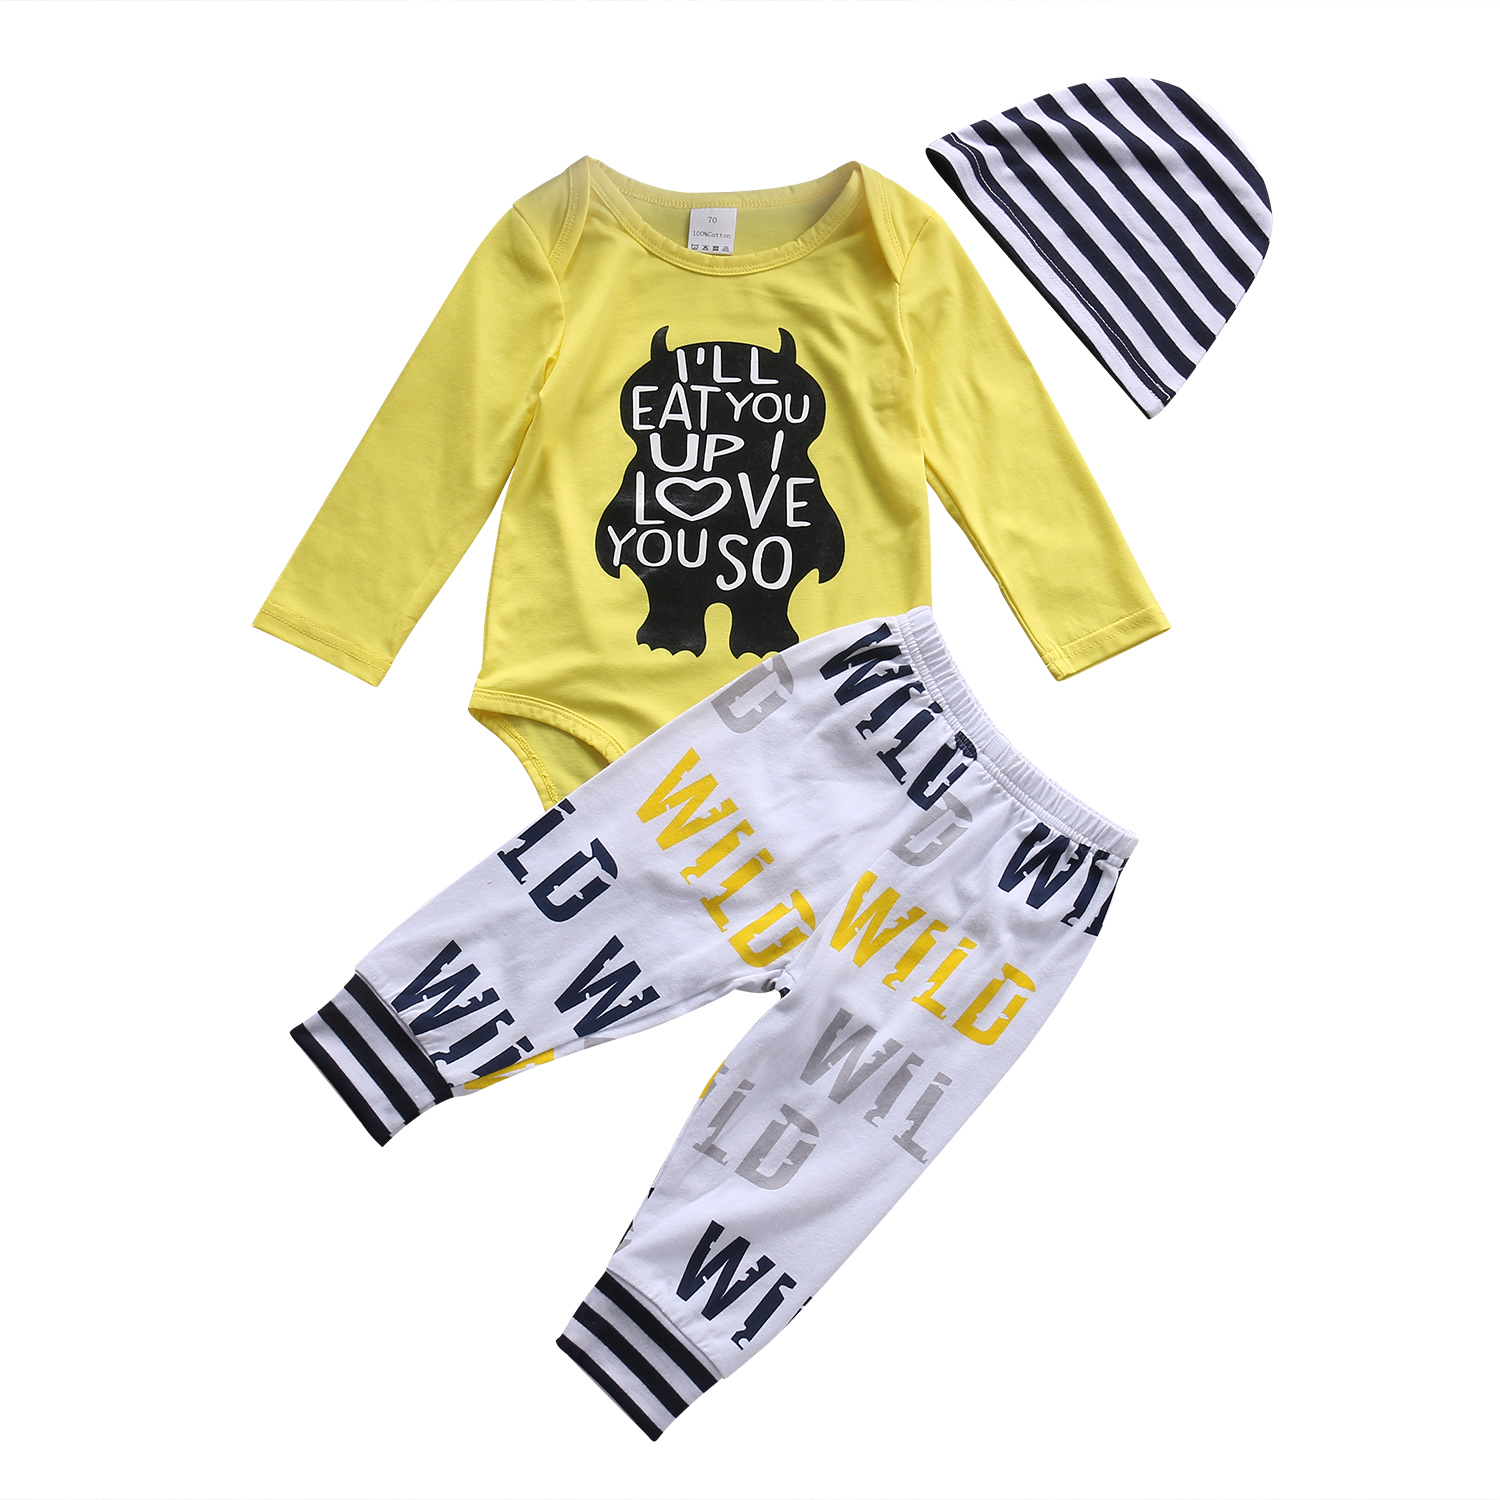 3PCS Newborn Baby Clothes Infant Baby Boys Yellow Letter Romper + Pants + striped hat Playsuit Outfit Set Baby Boy clothing 18M